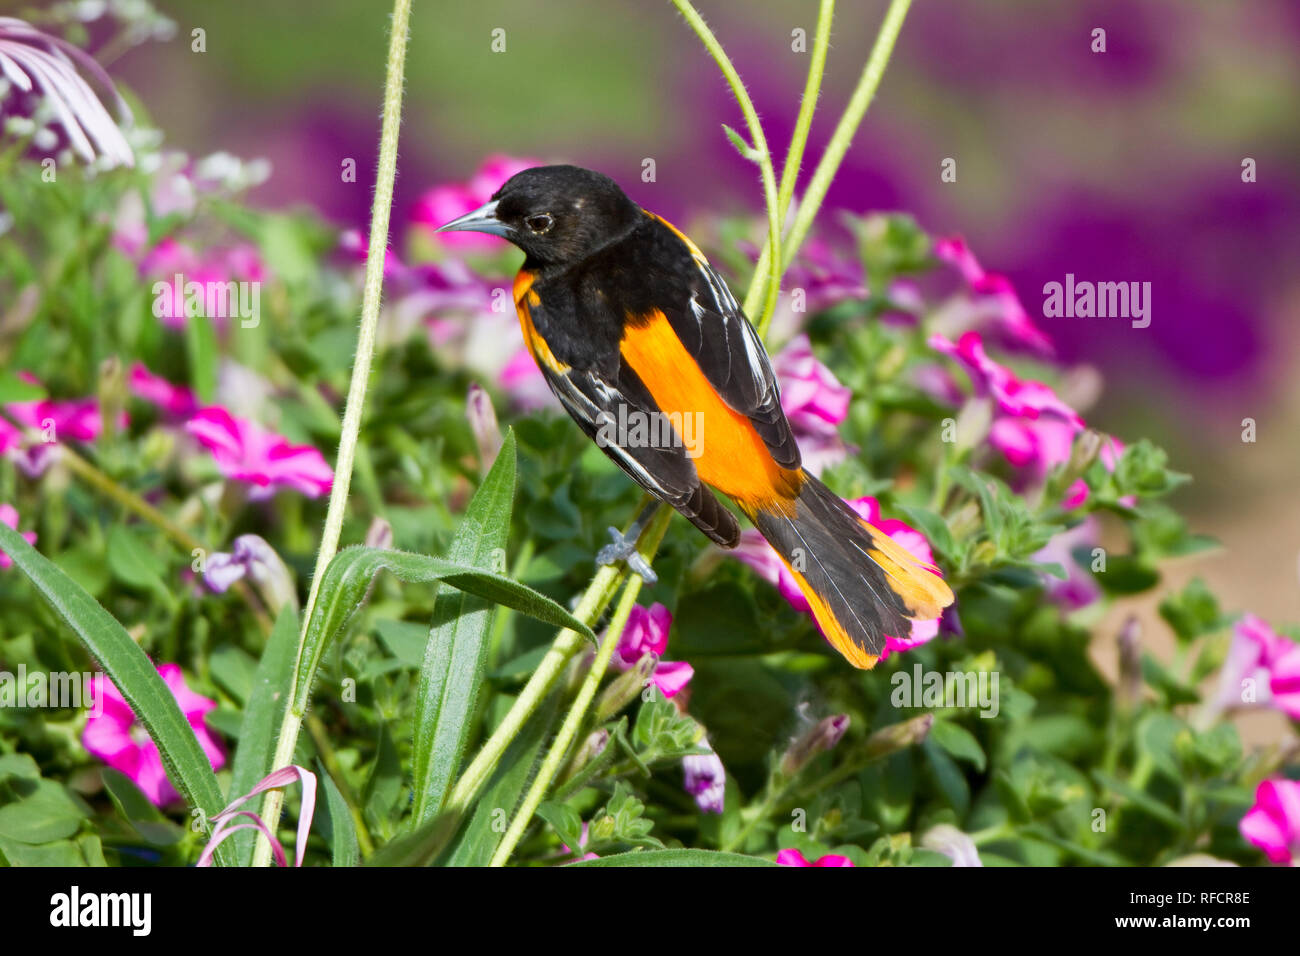 01611-09211 Baltimore Oriole (Icterus galbula) male on Pale Purple Coneflower (Echinacea pallida) in flower garden, Marion Co., IL - Stock Image